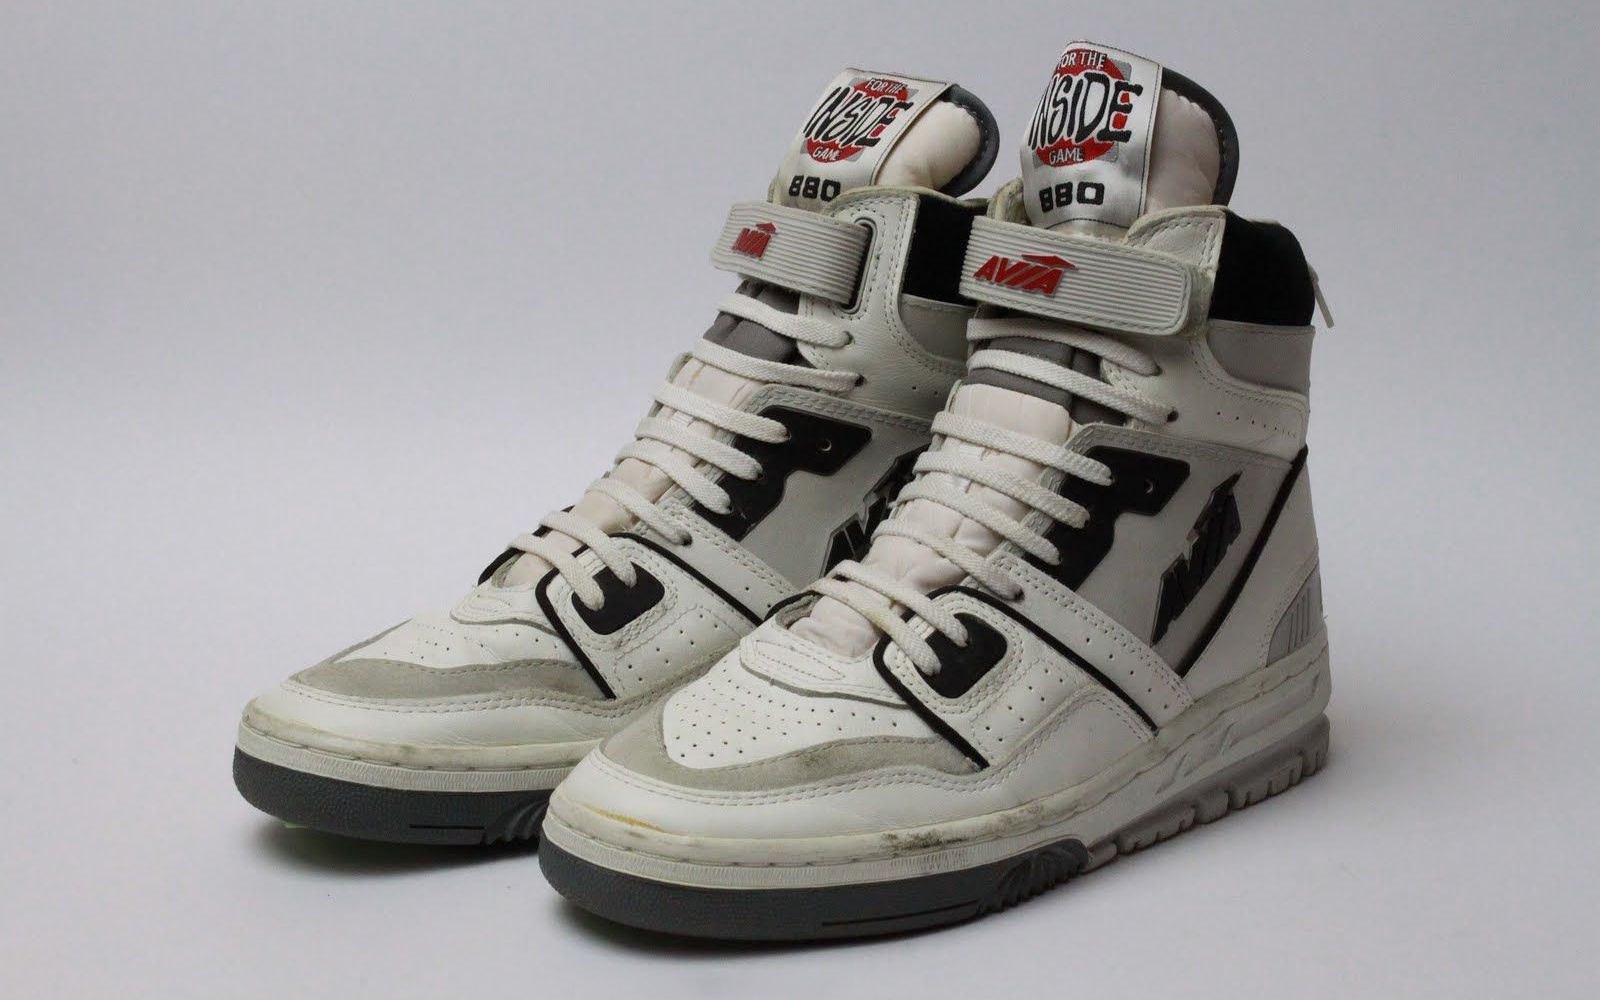 80s and 90s basketball shoes